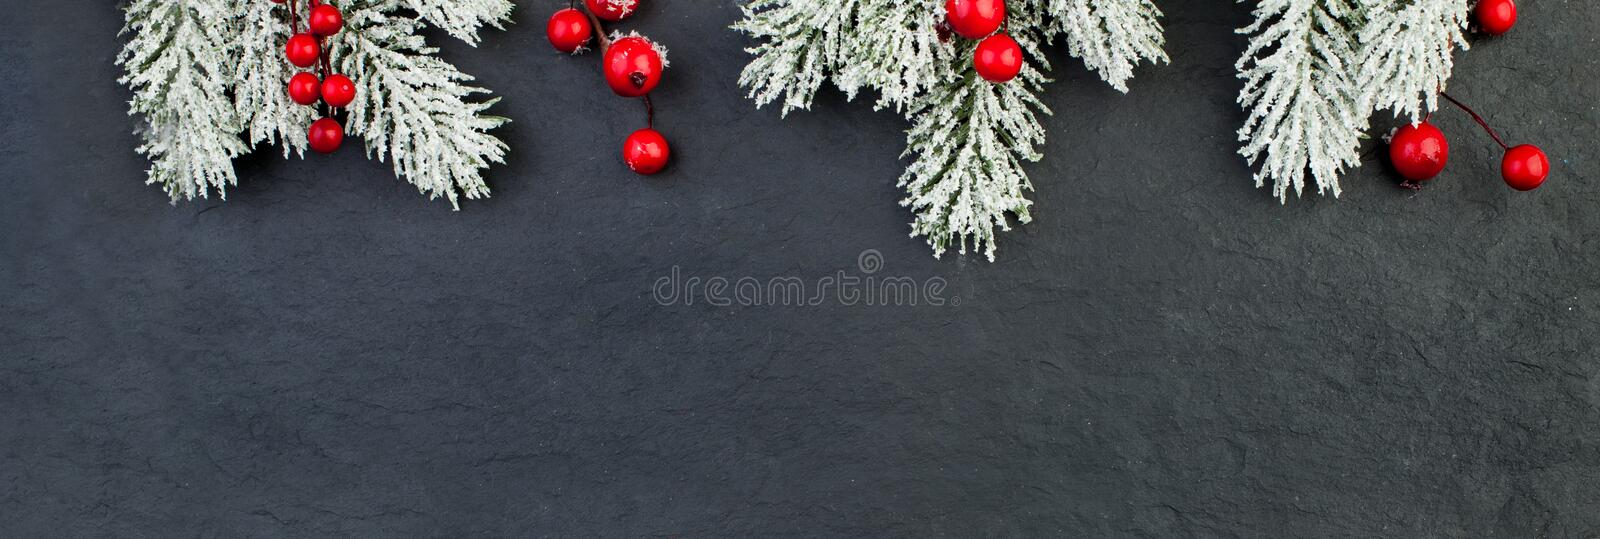 Christmas background border made of fir tree branches and red berries on black background.  stock images